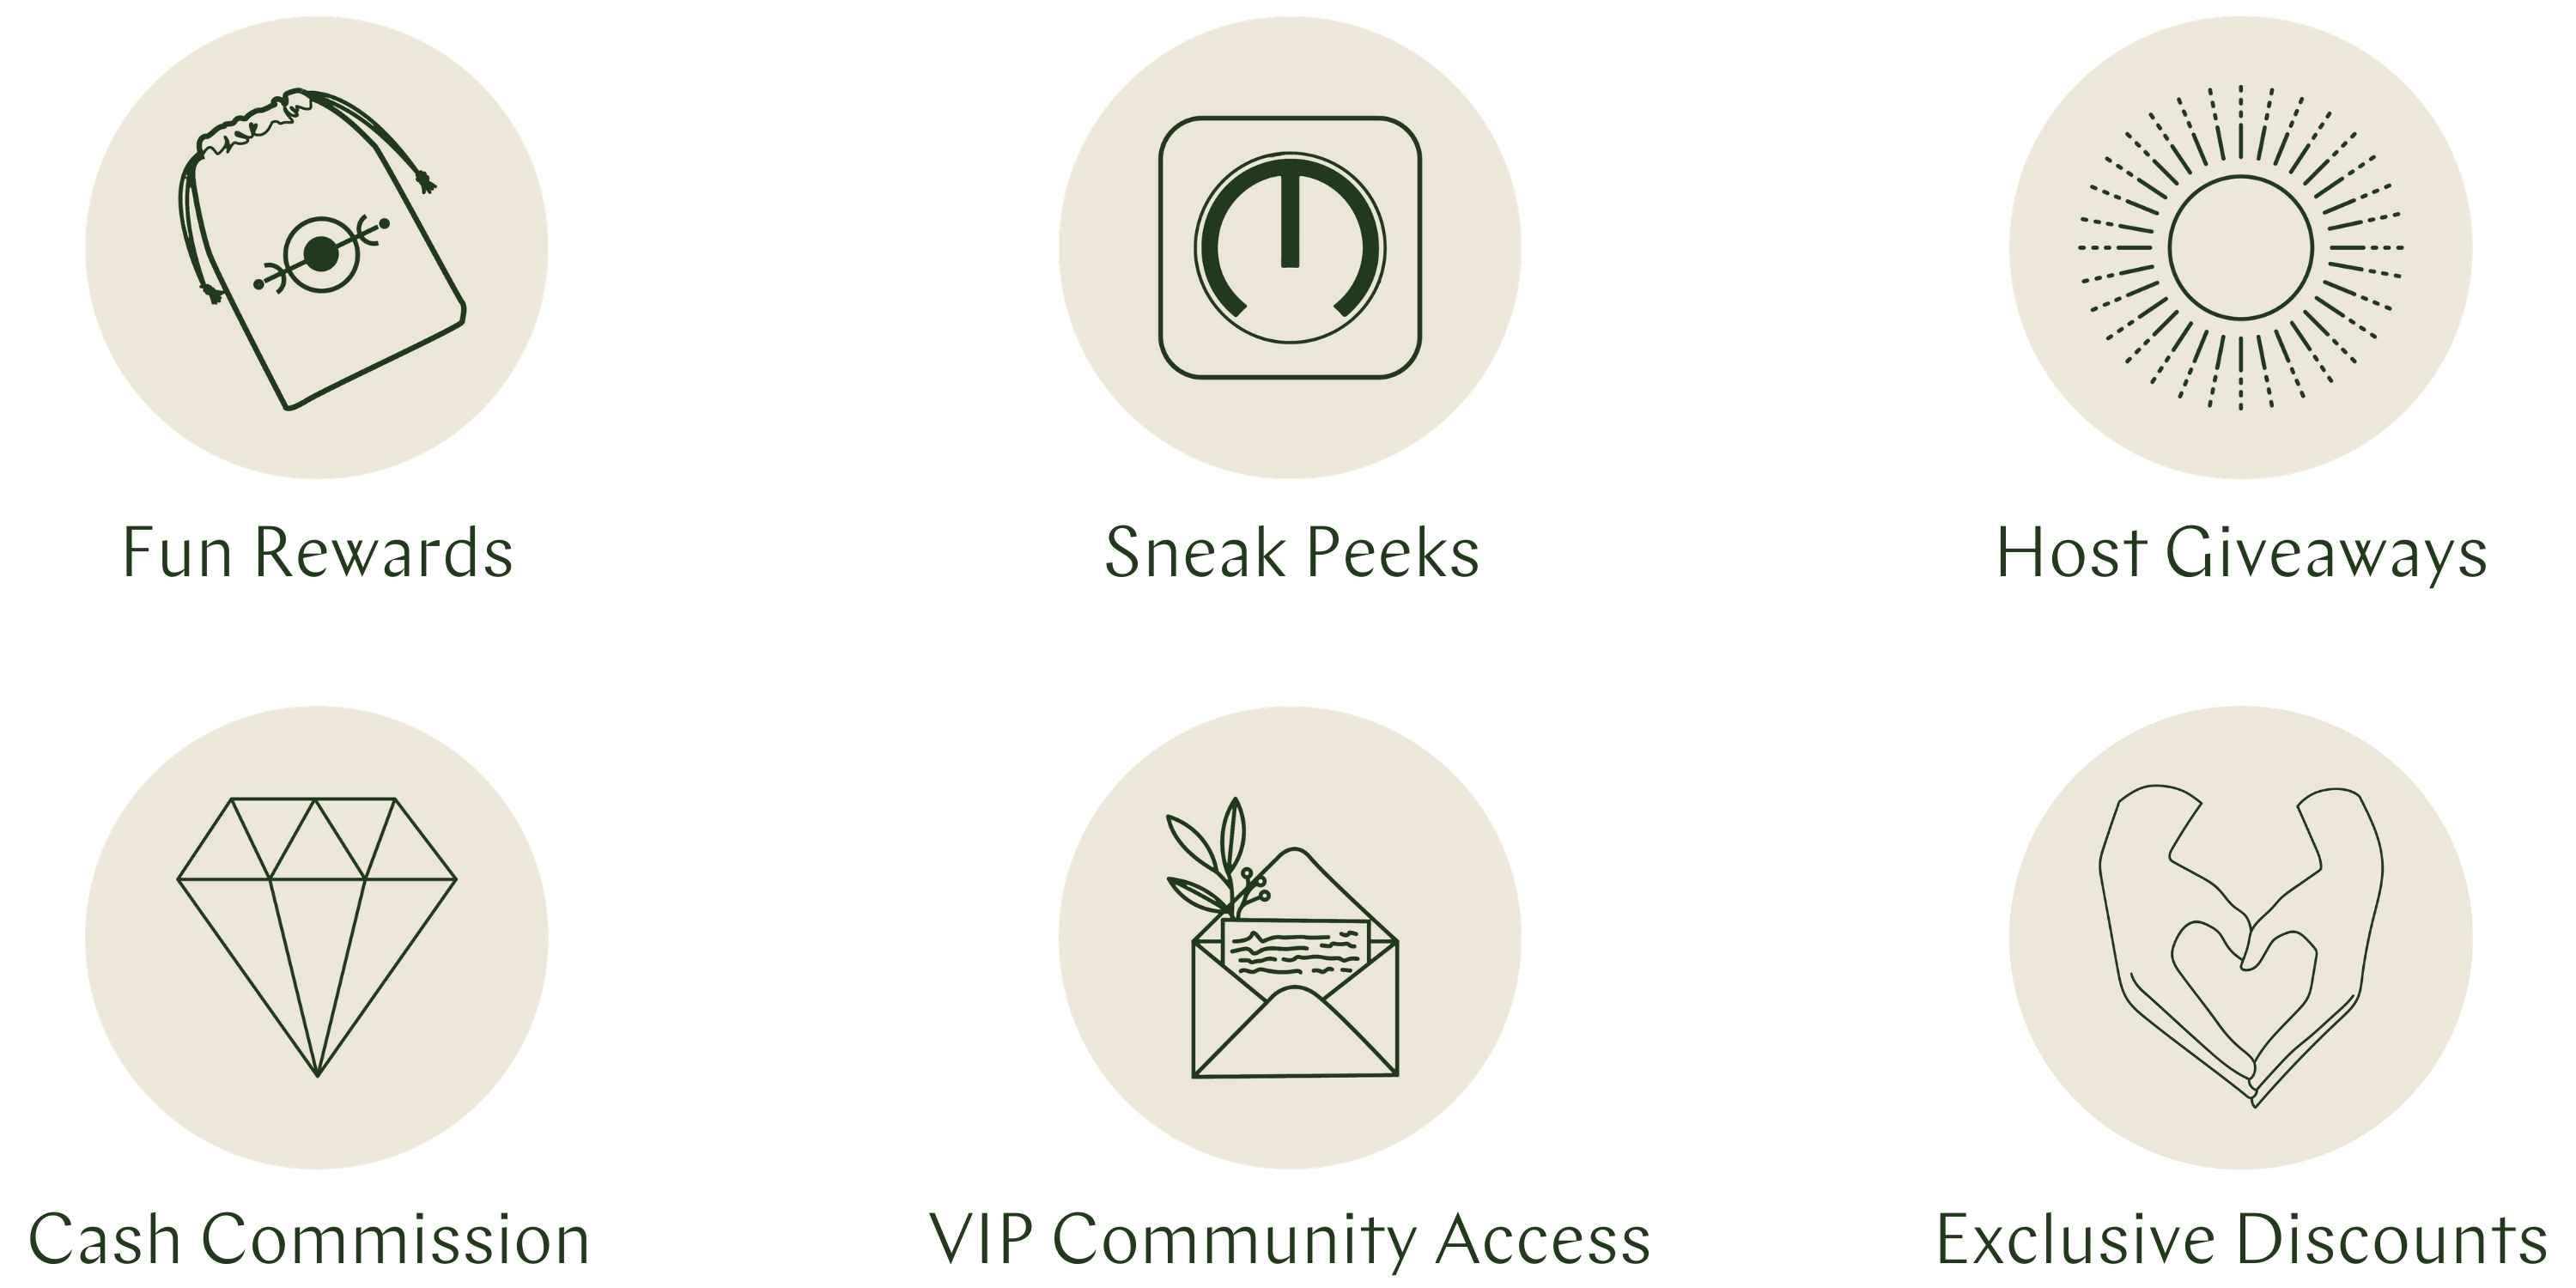 Mantra Ambassador Rewards: fun rewards, sneak peeks, cash commission, host giveaways, VIP community access, and exclusive discounts to products